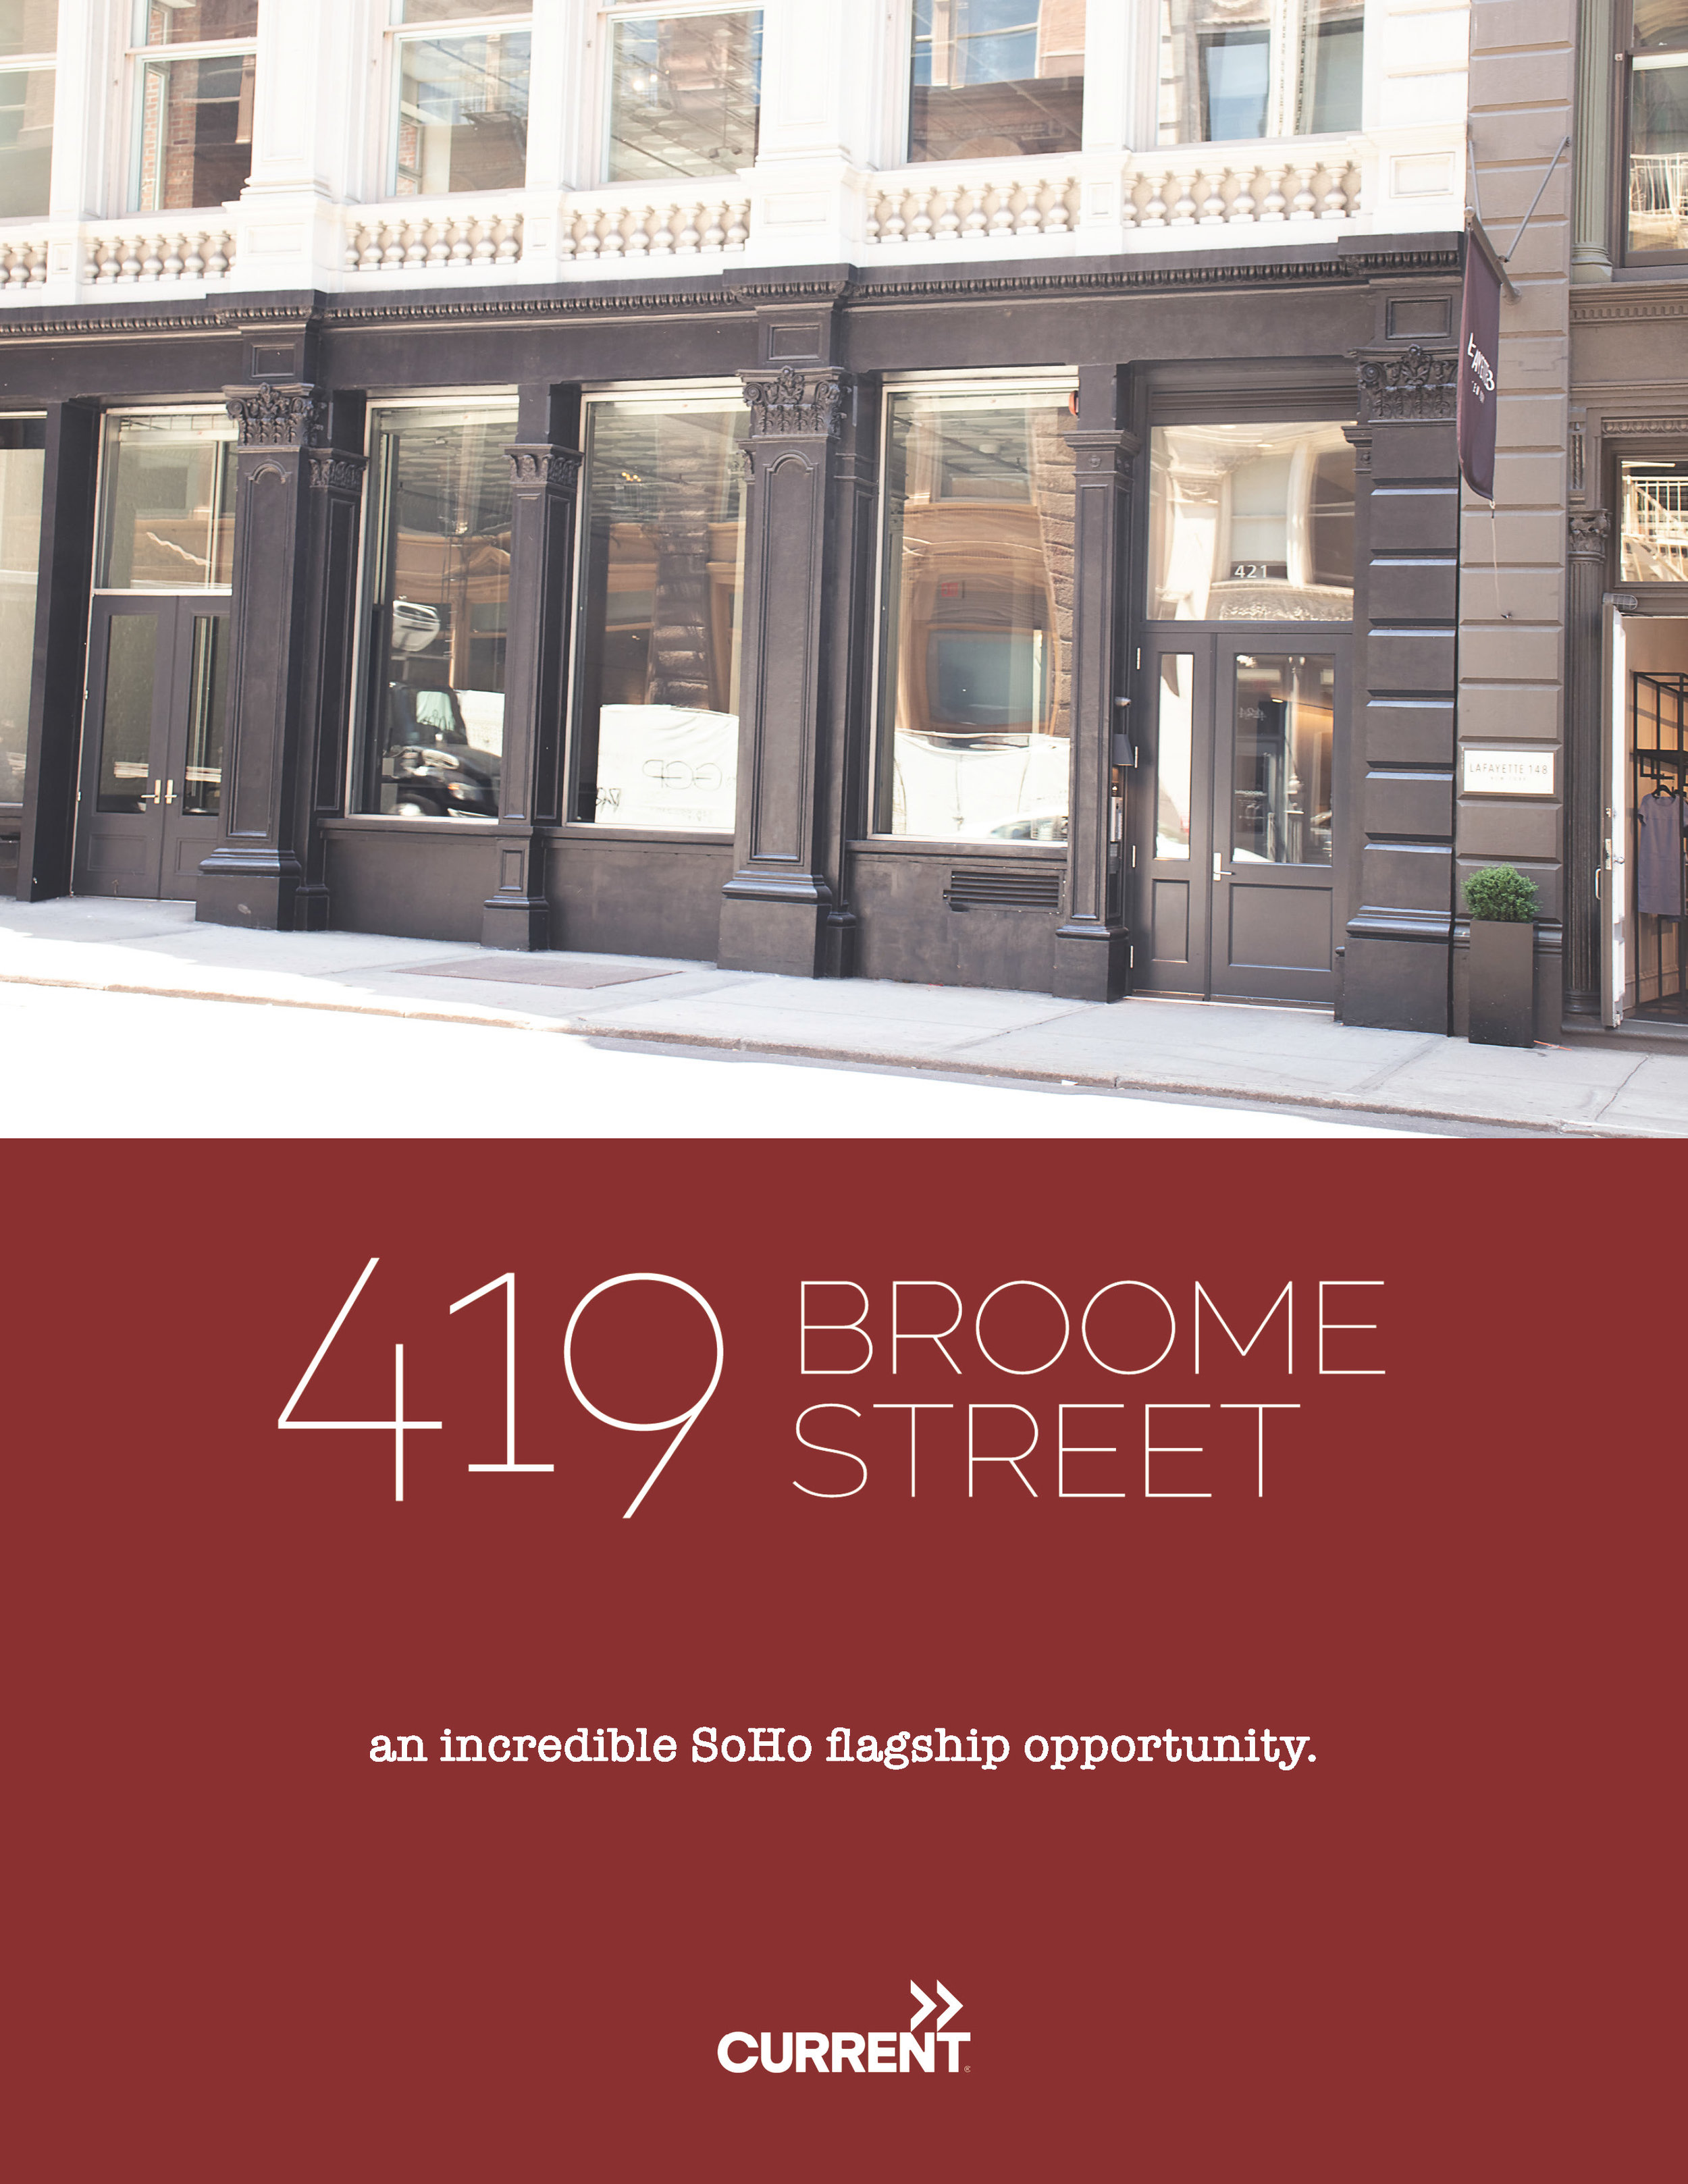 419 Broome Street Current Brochure_Page_1.jpg